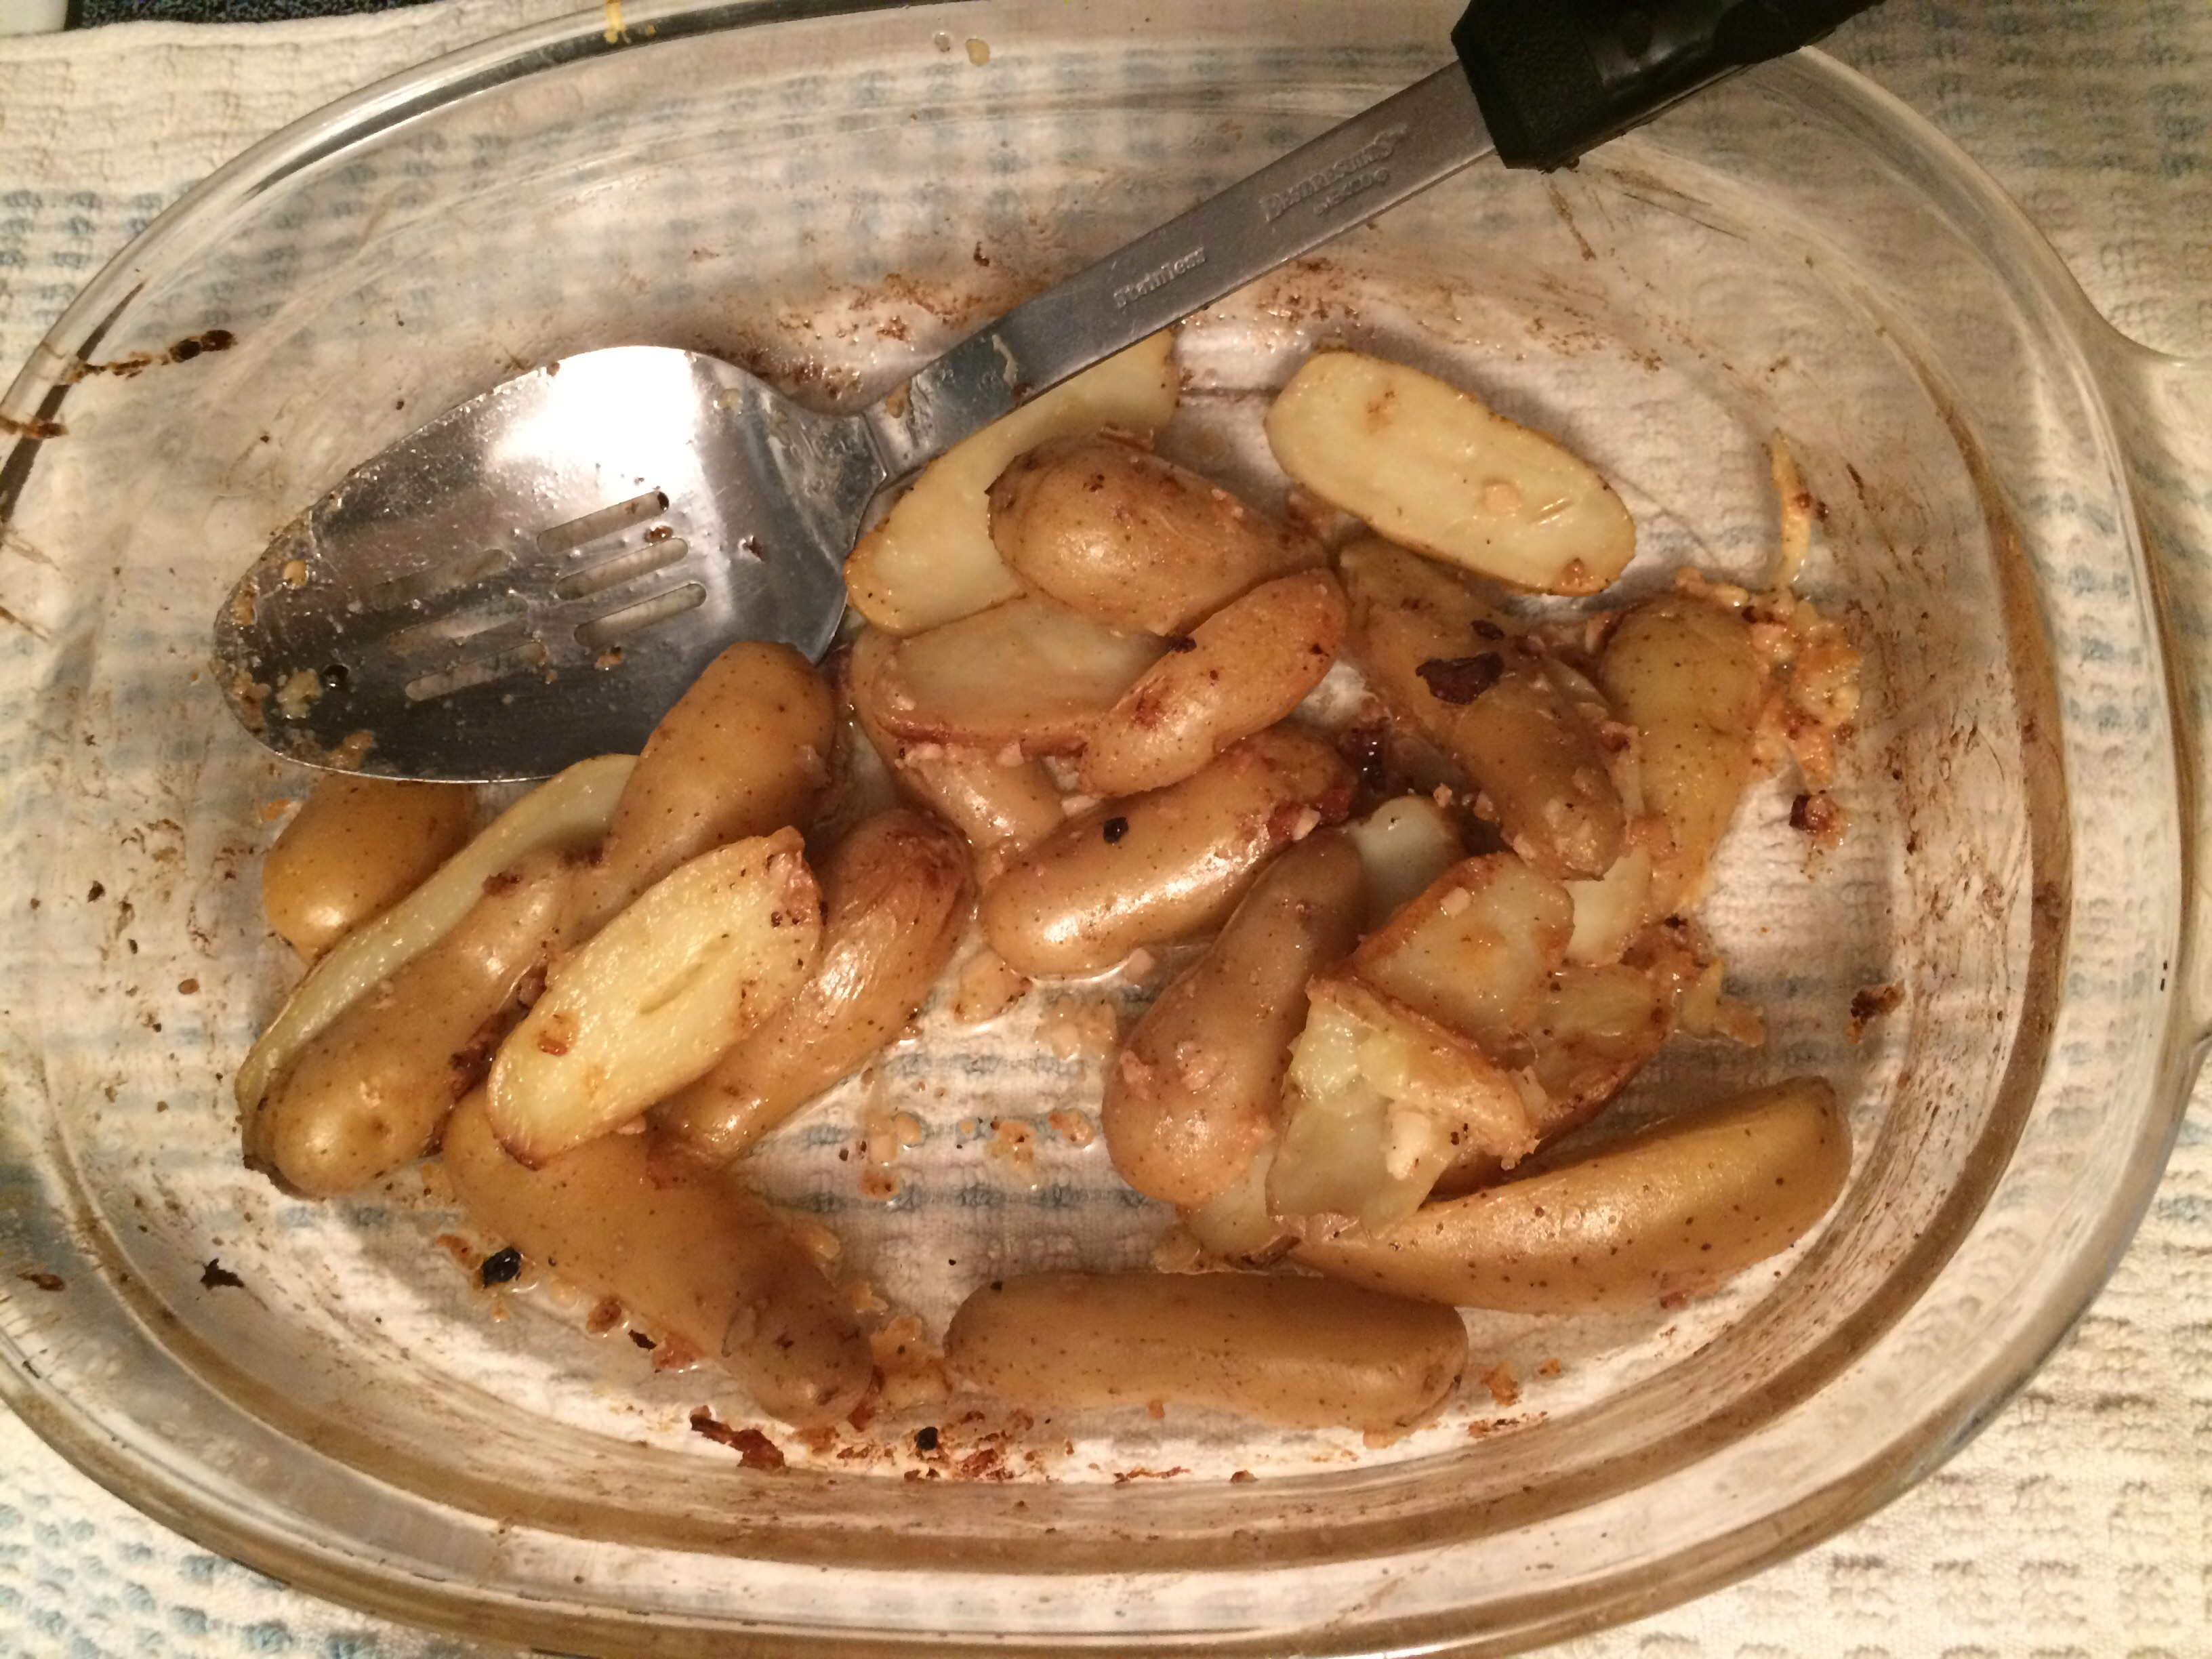 Roasted Garlic-Parmesan Fingerling Potatoes